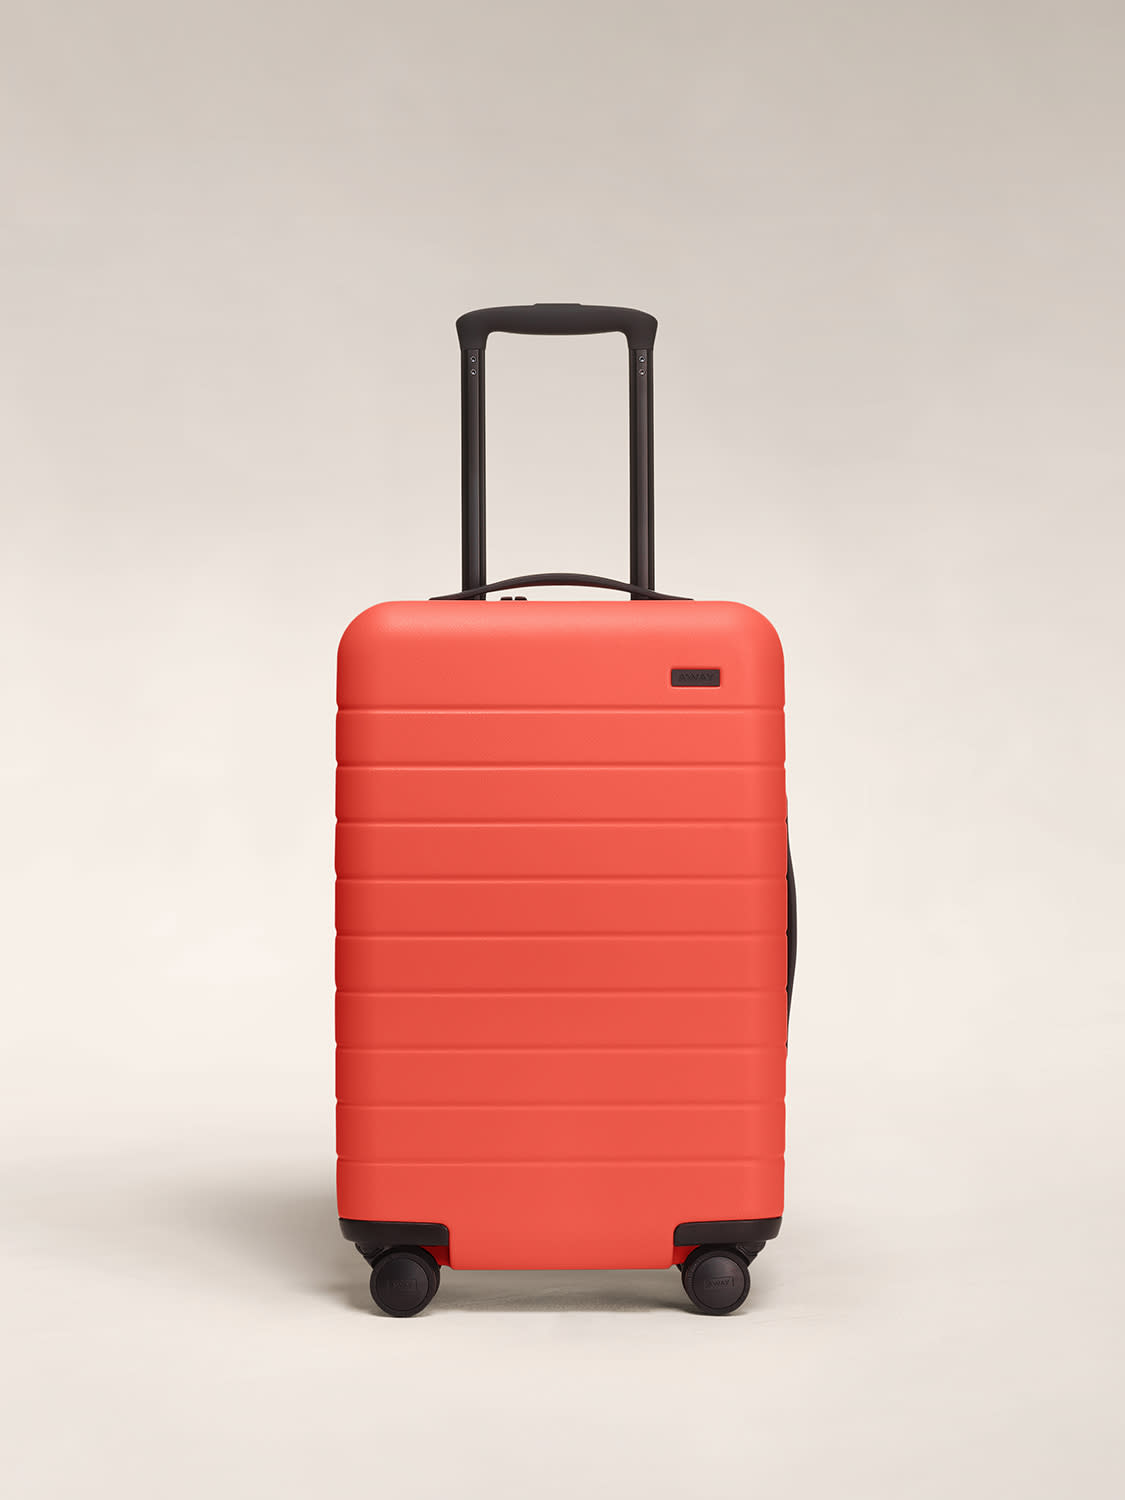 Front view of Away hardside Carry-On sized luggage in Coral